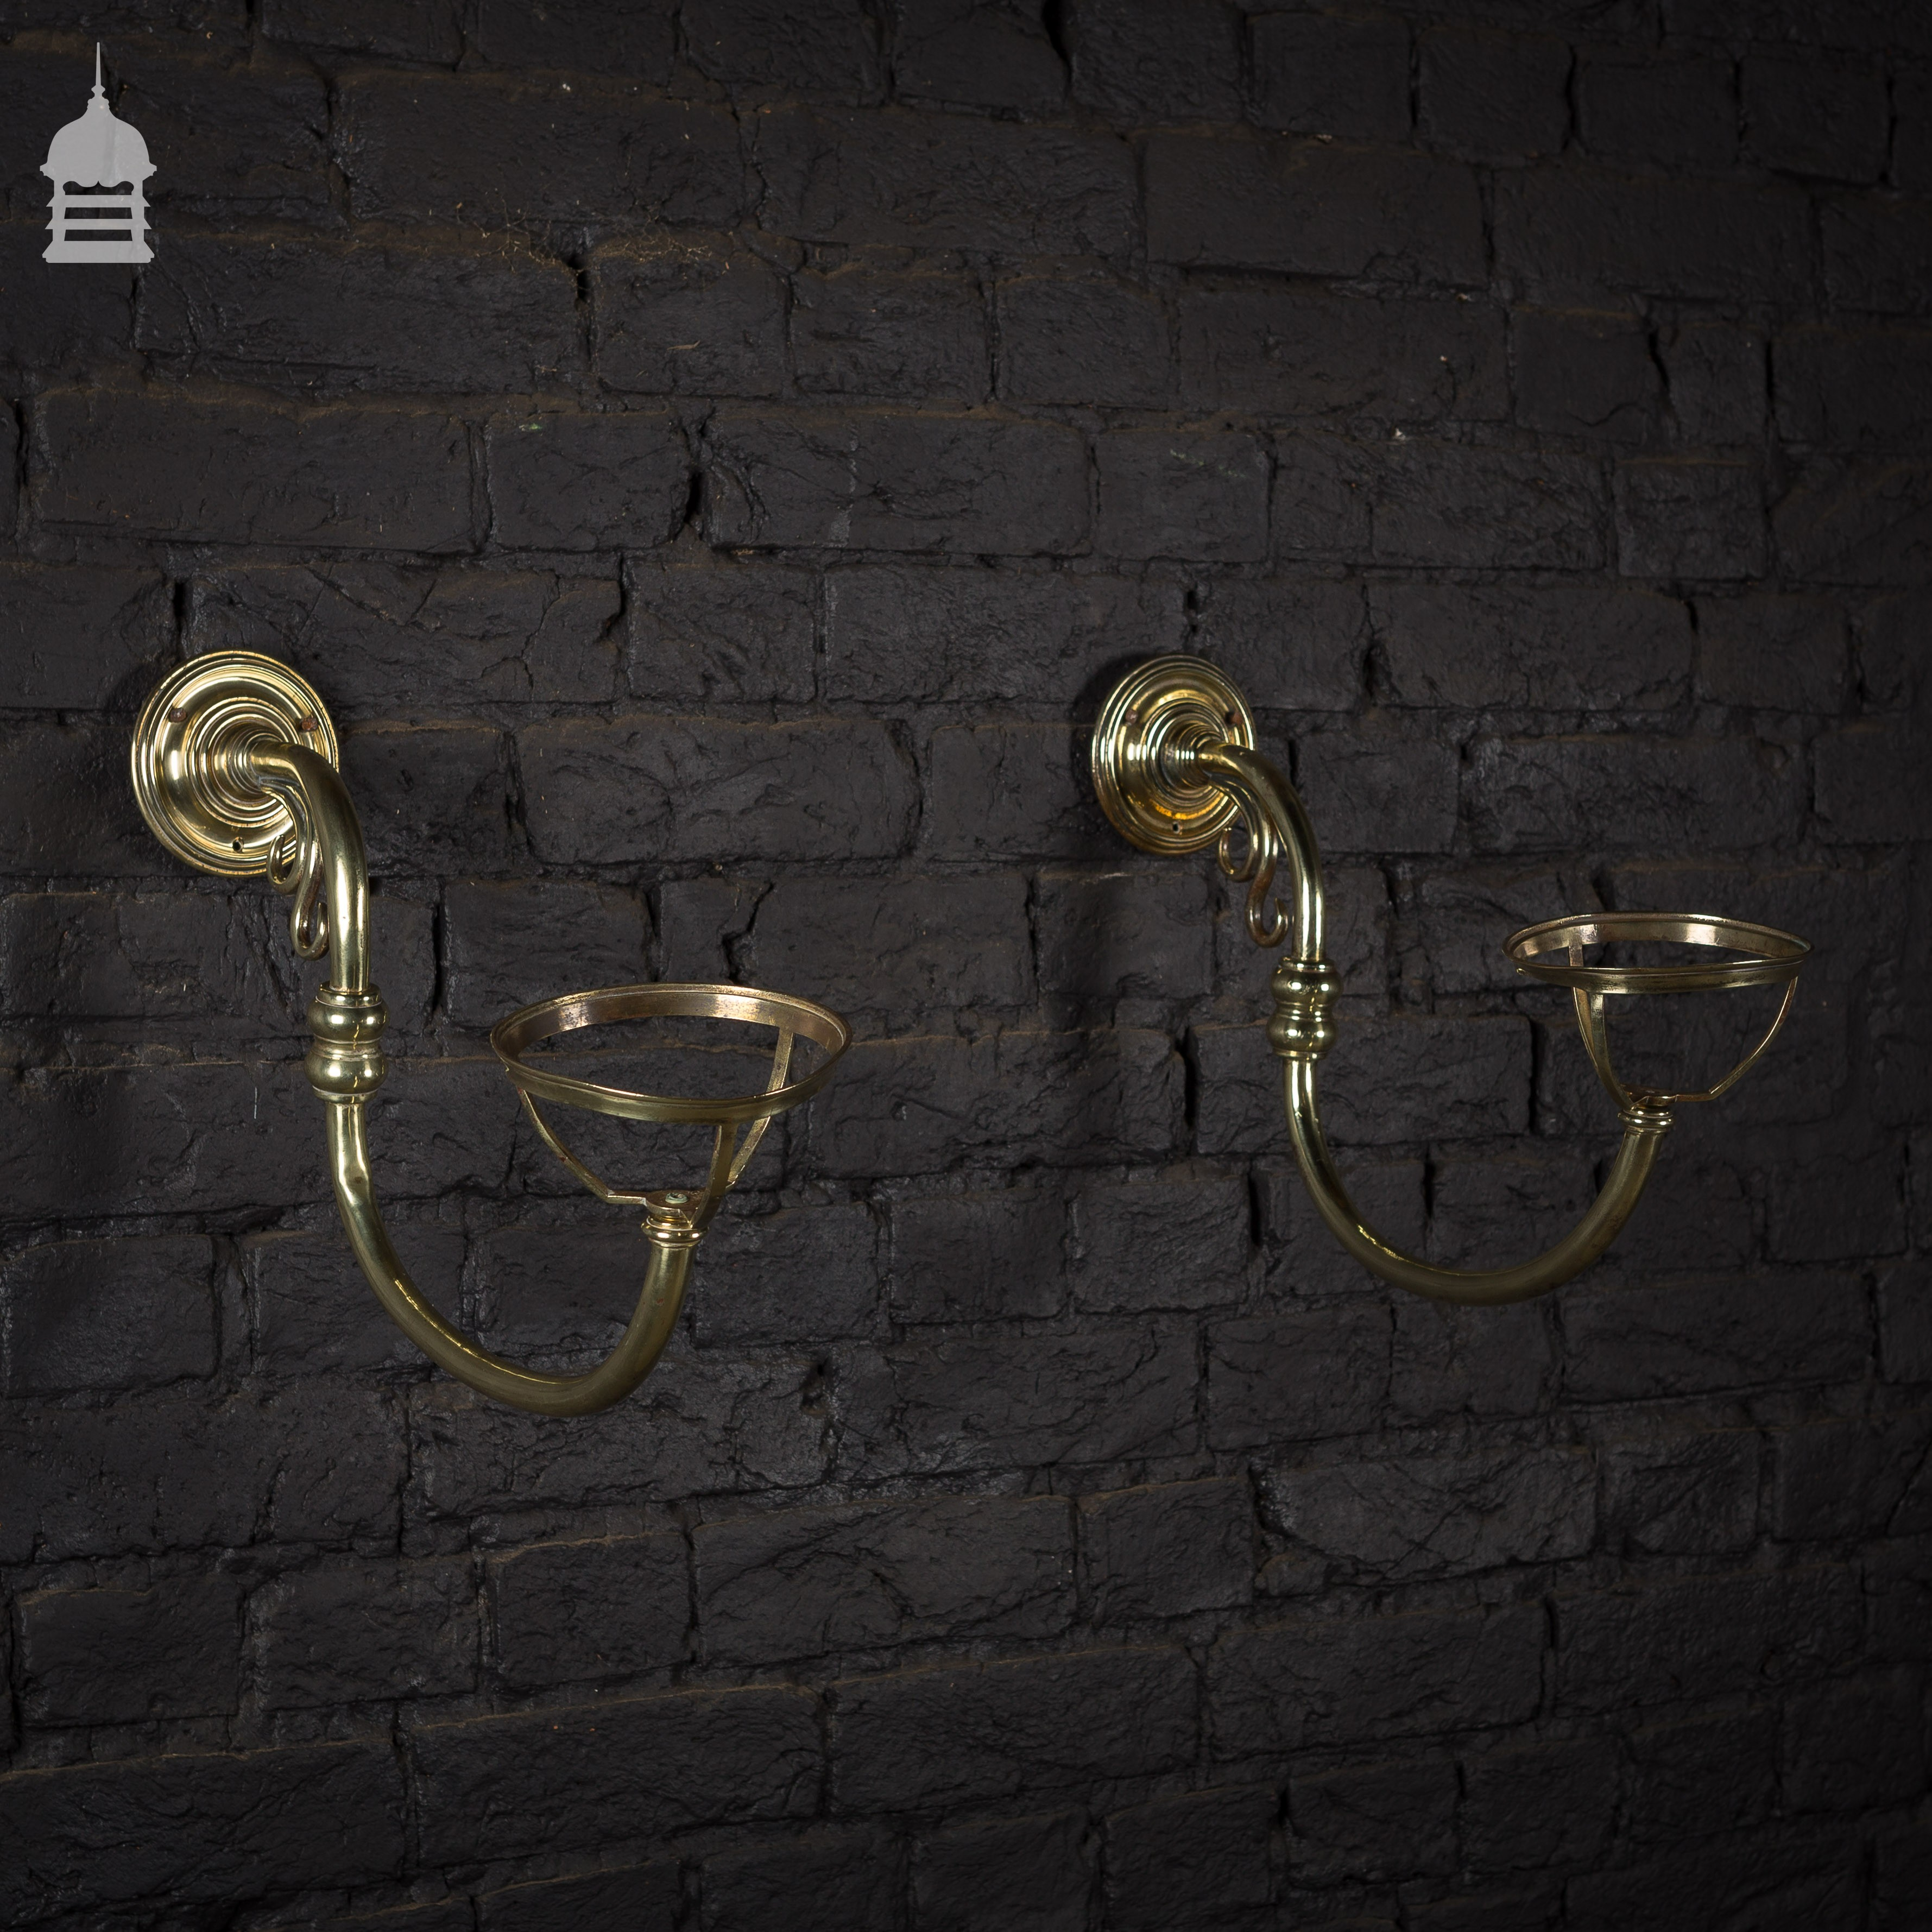 Pair of Brass Wall Mounted Gas Light Fittings